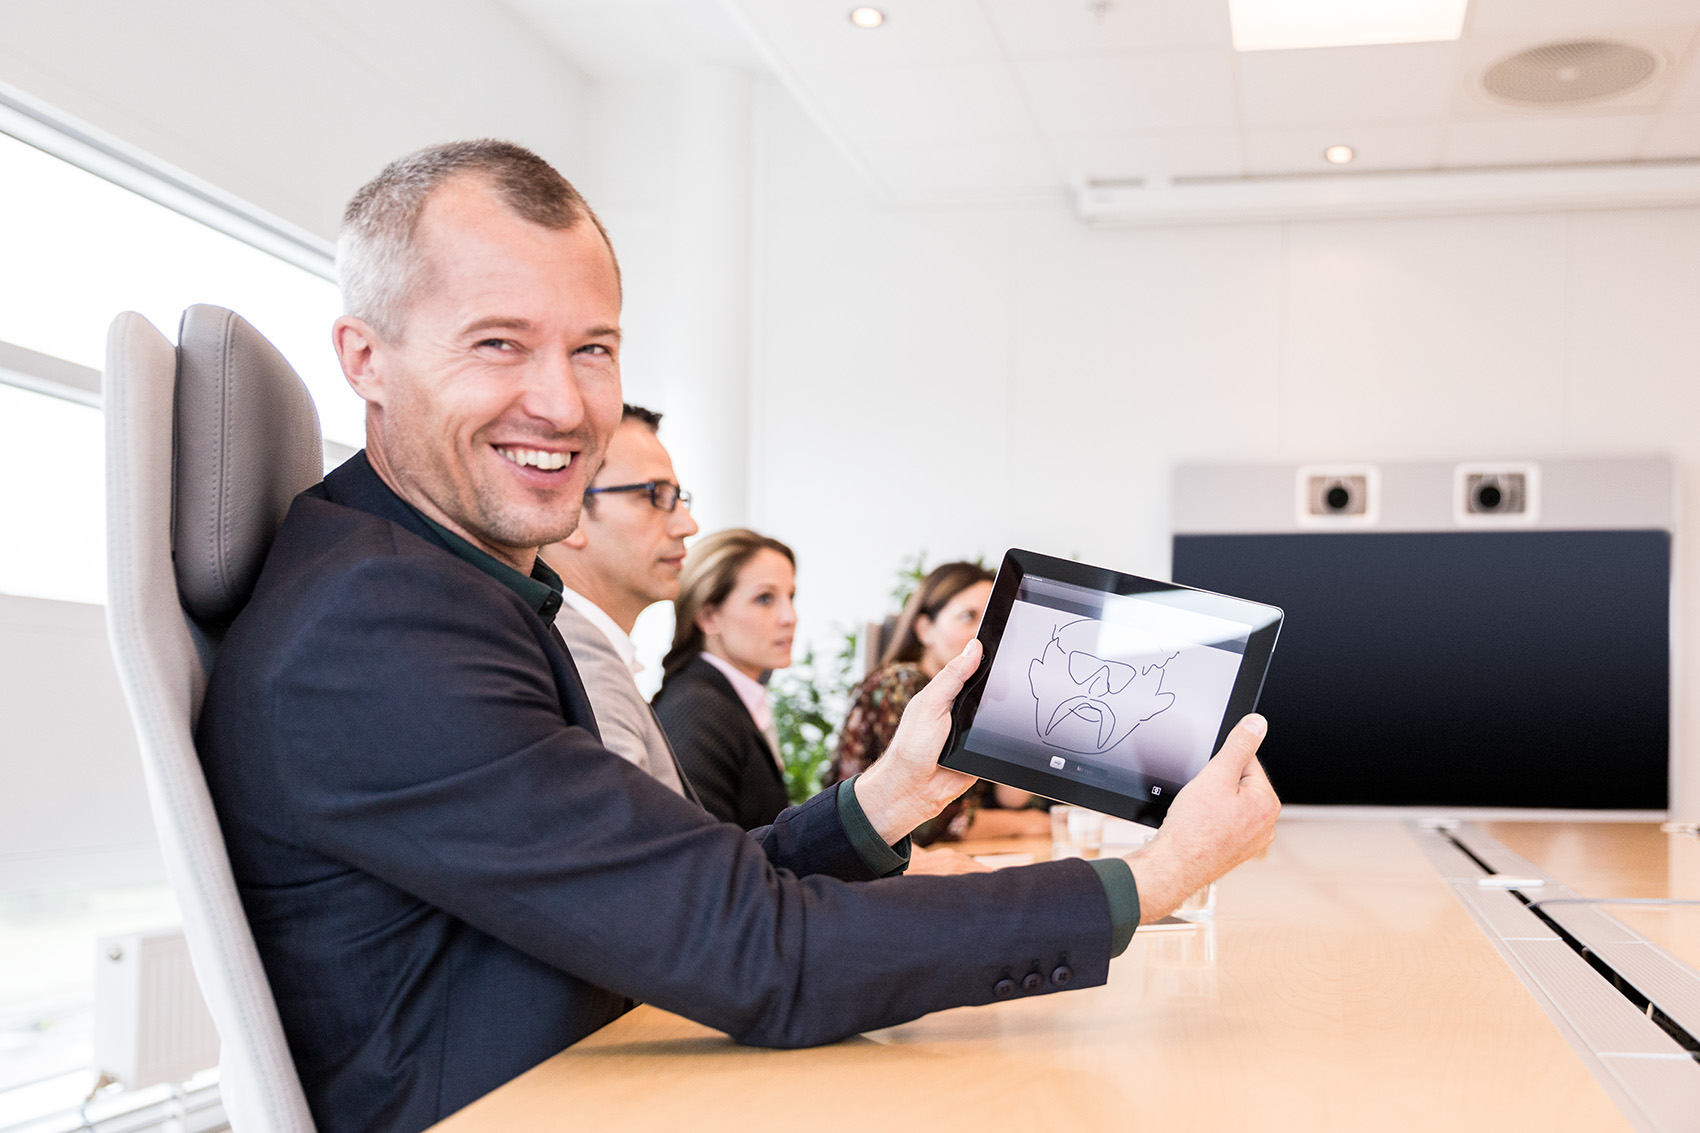 Man smiles with a tablet during modern boardroom conference meeting with team